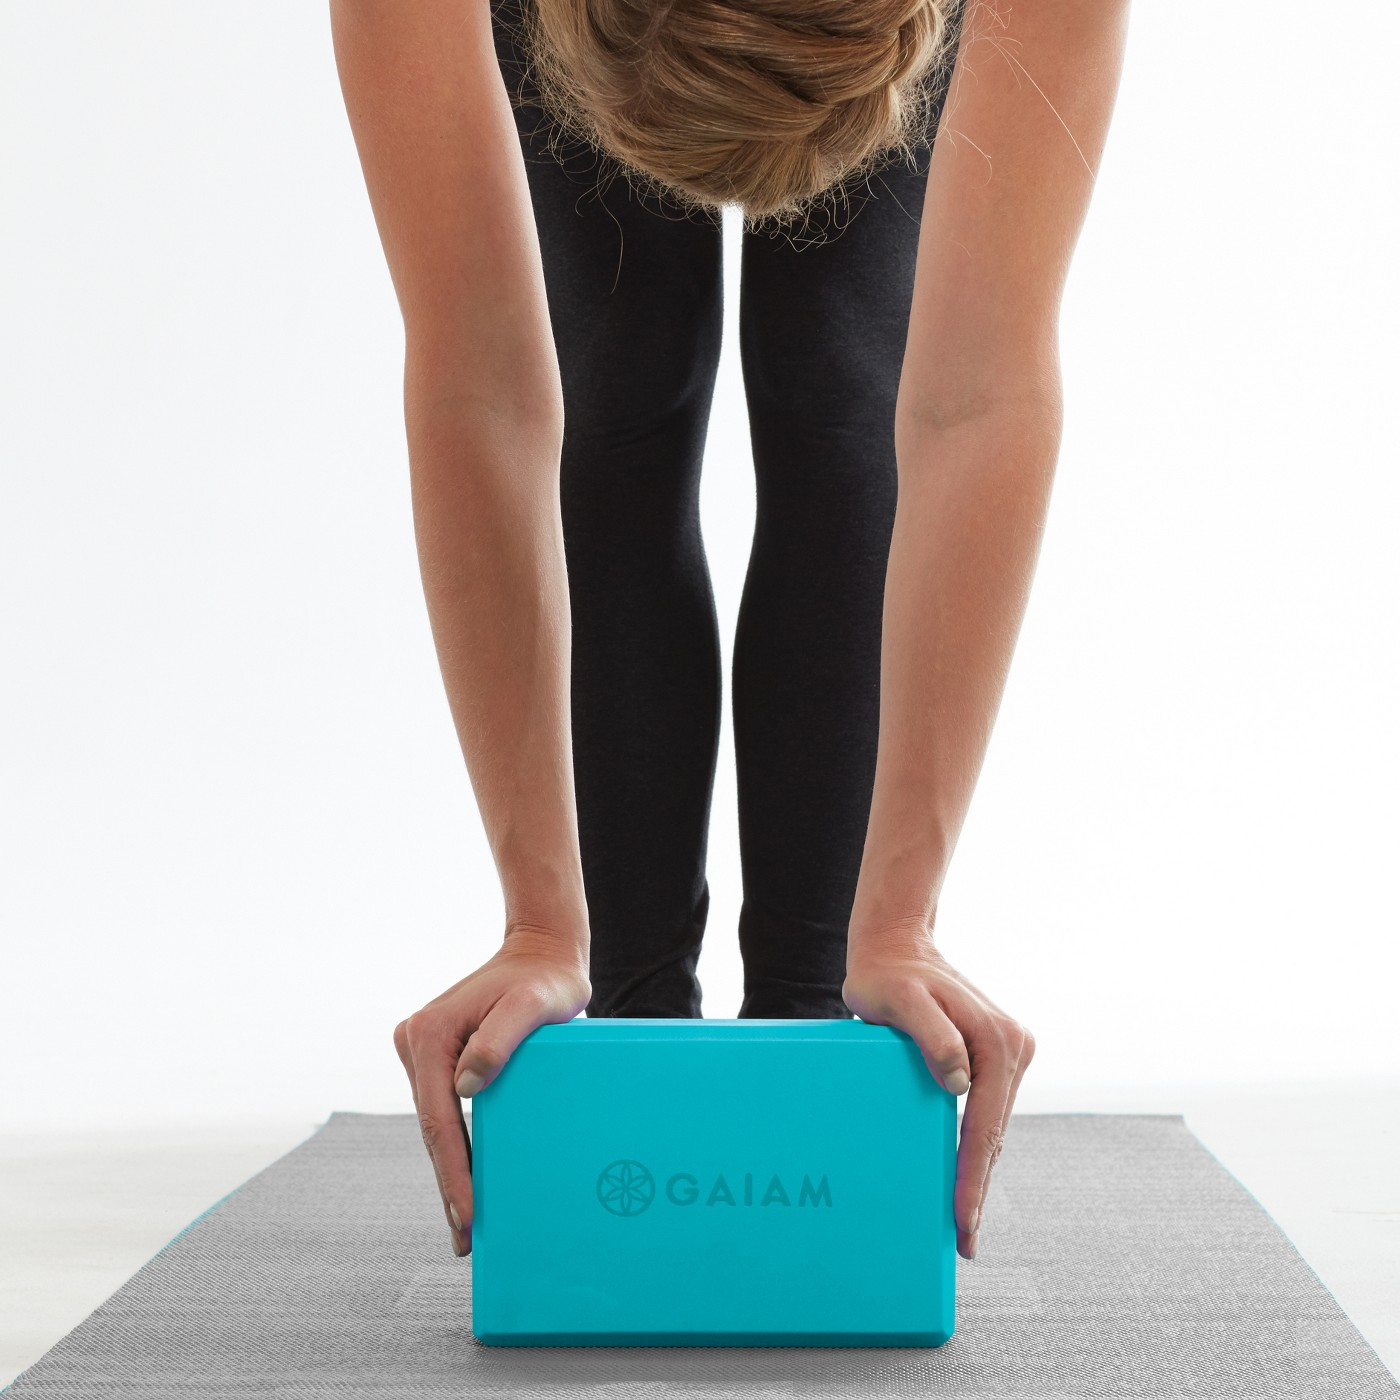 Cool affordable gifts under $15: Gaiam tricolor yoga block